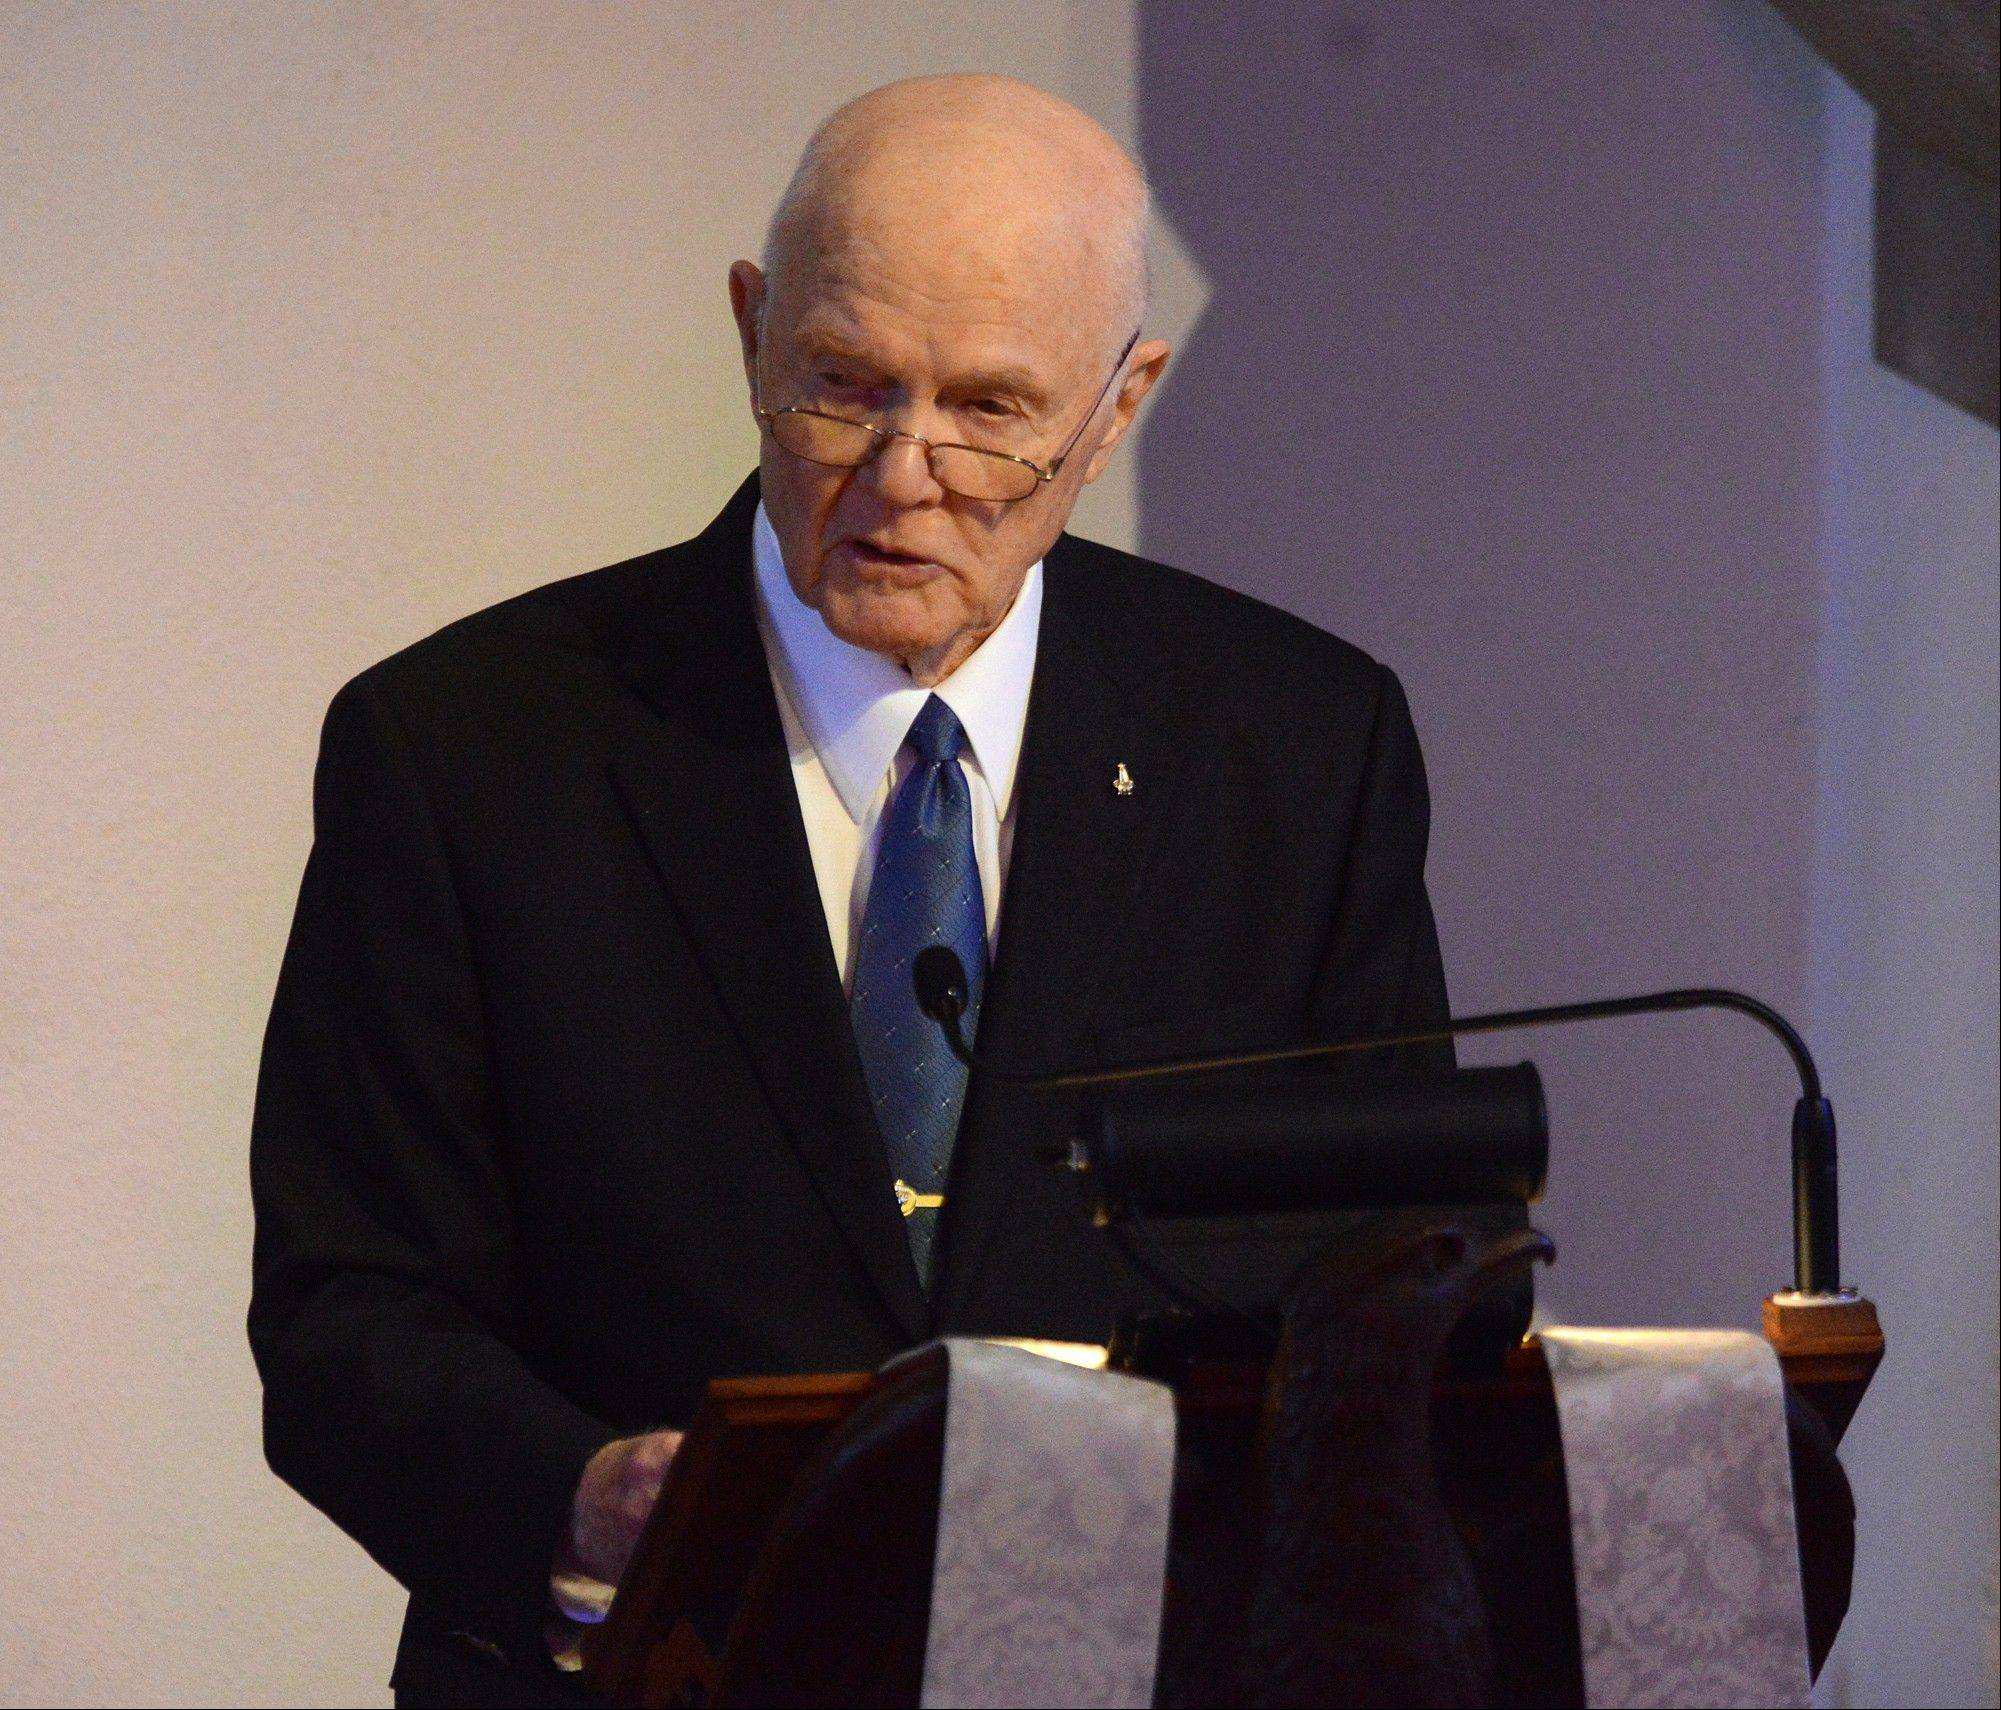 Senator John Glenn gives a eulogy during the funeral of fellow astronaut Scott Carpenter on Saturday, Nov. 2, 2013, in Boulder, Colo. Carpenter was the second American to orbit the Earth, following John Glenn.